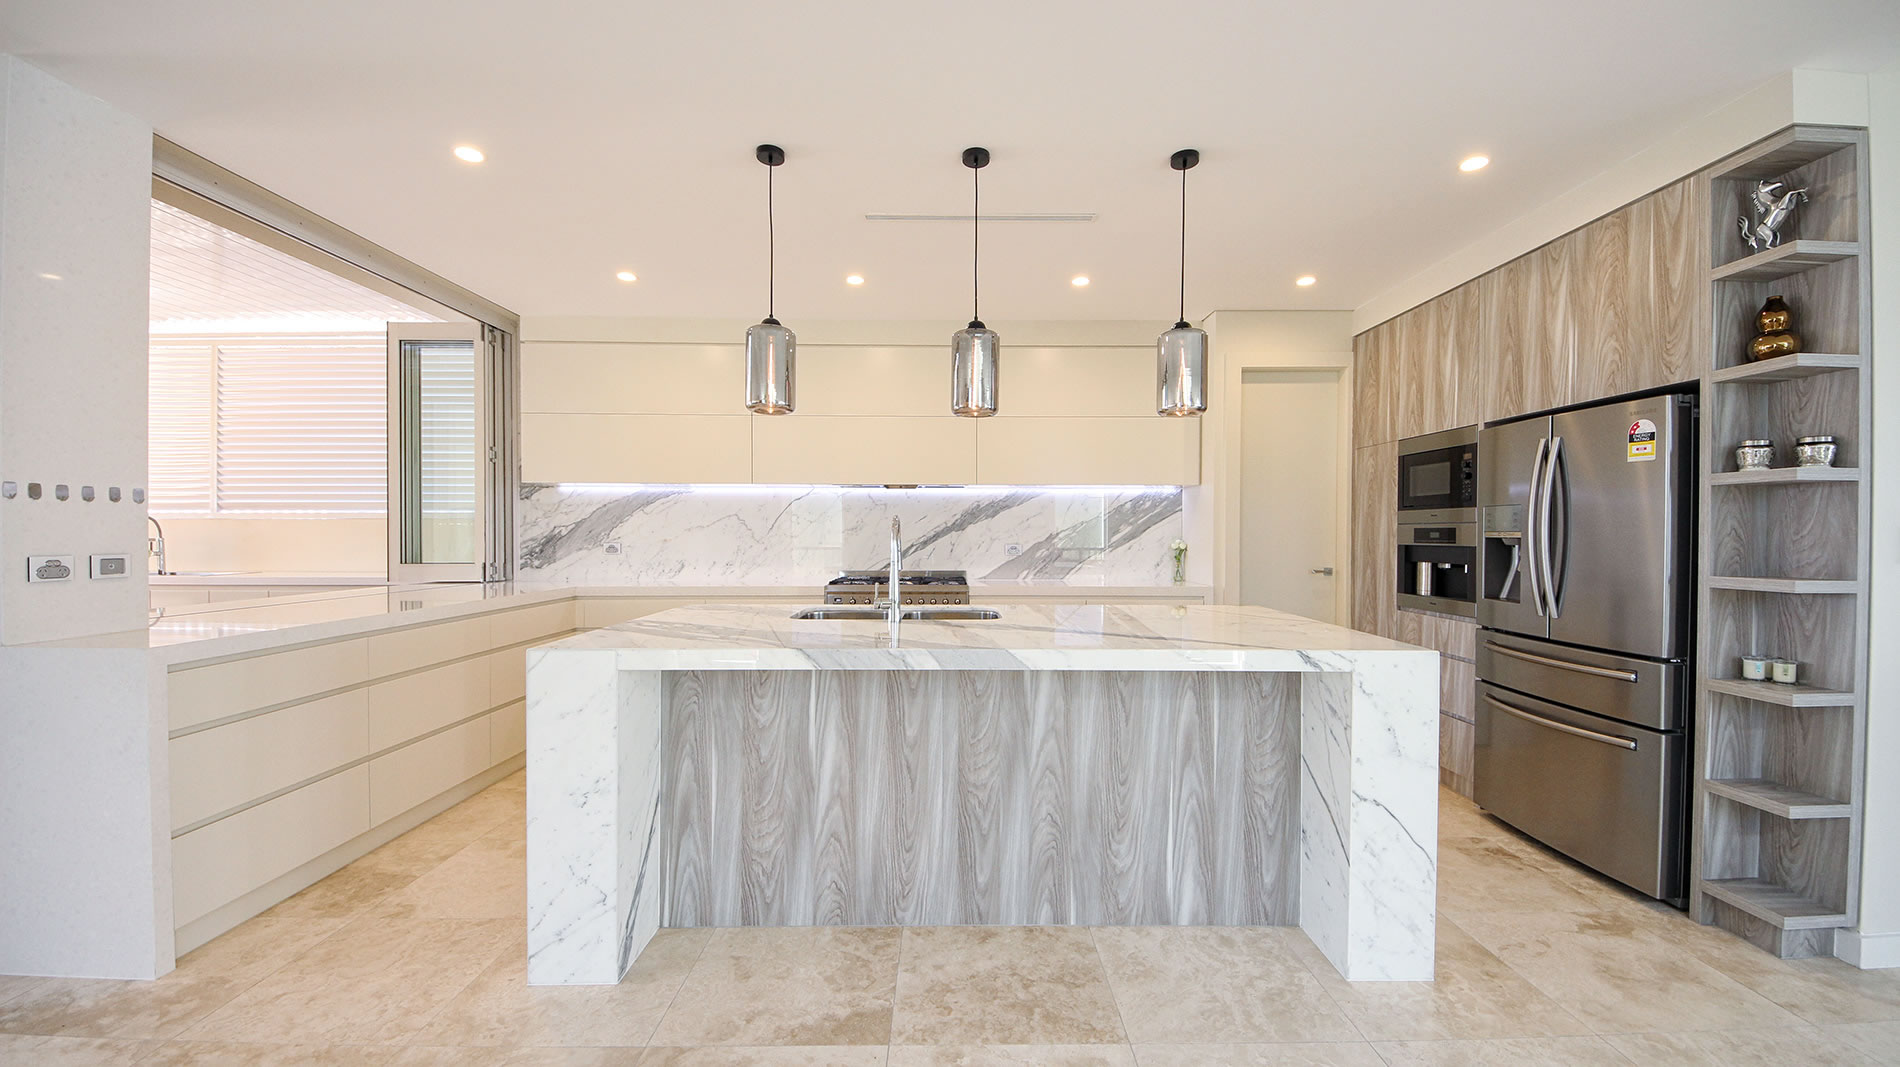 How Big Is Your Kitchen Island